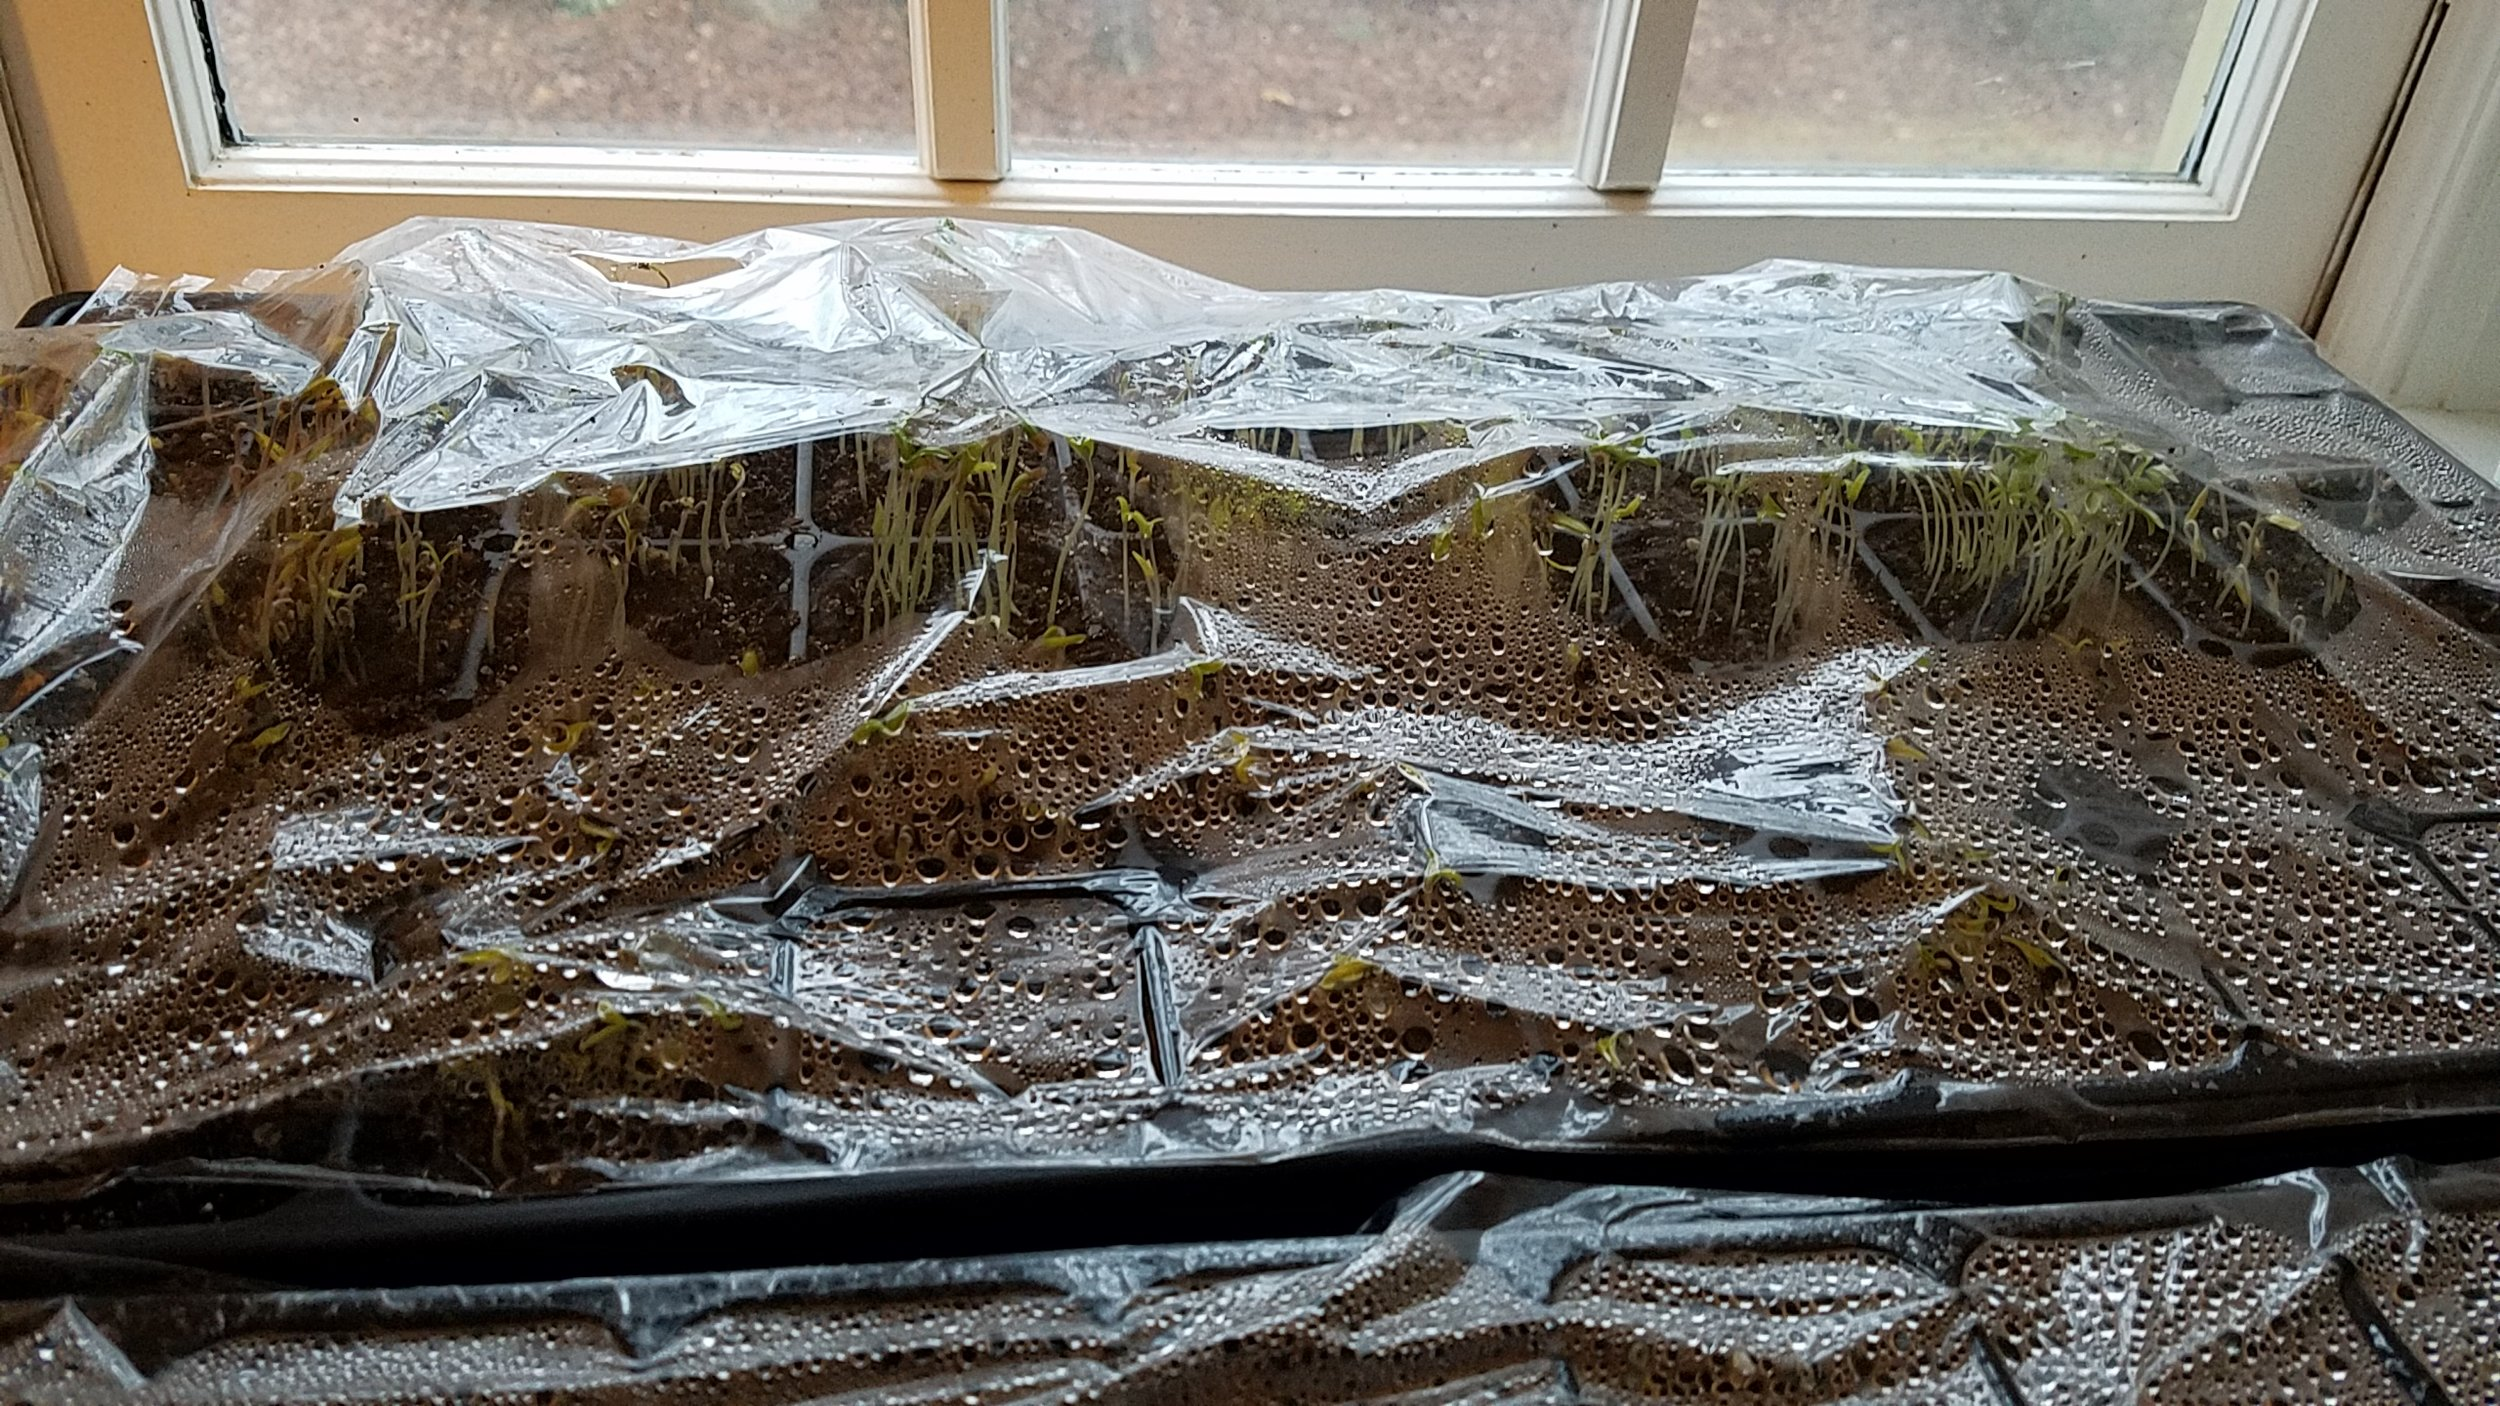 Germinating flat - morning, prior to flipping the plastic